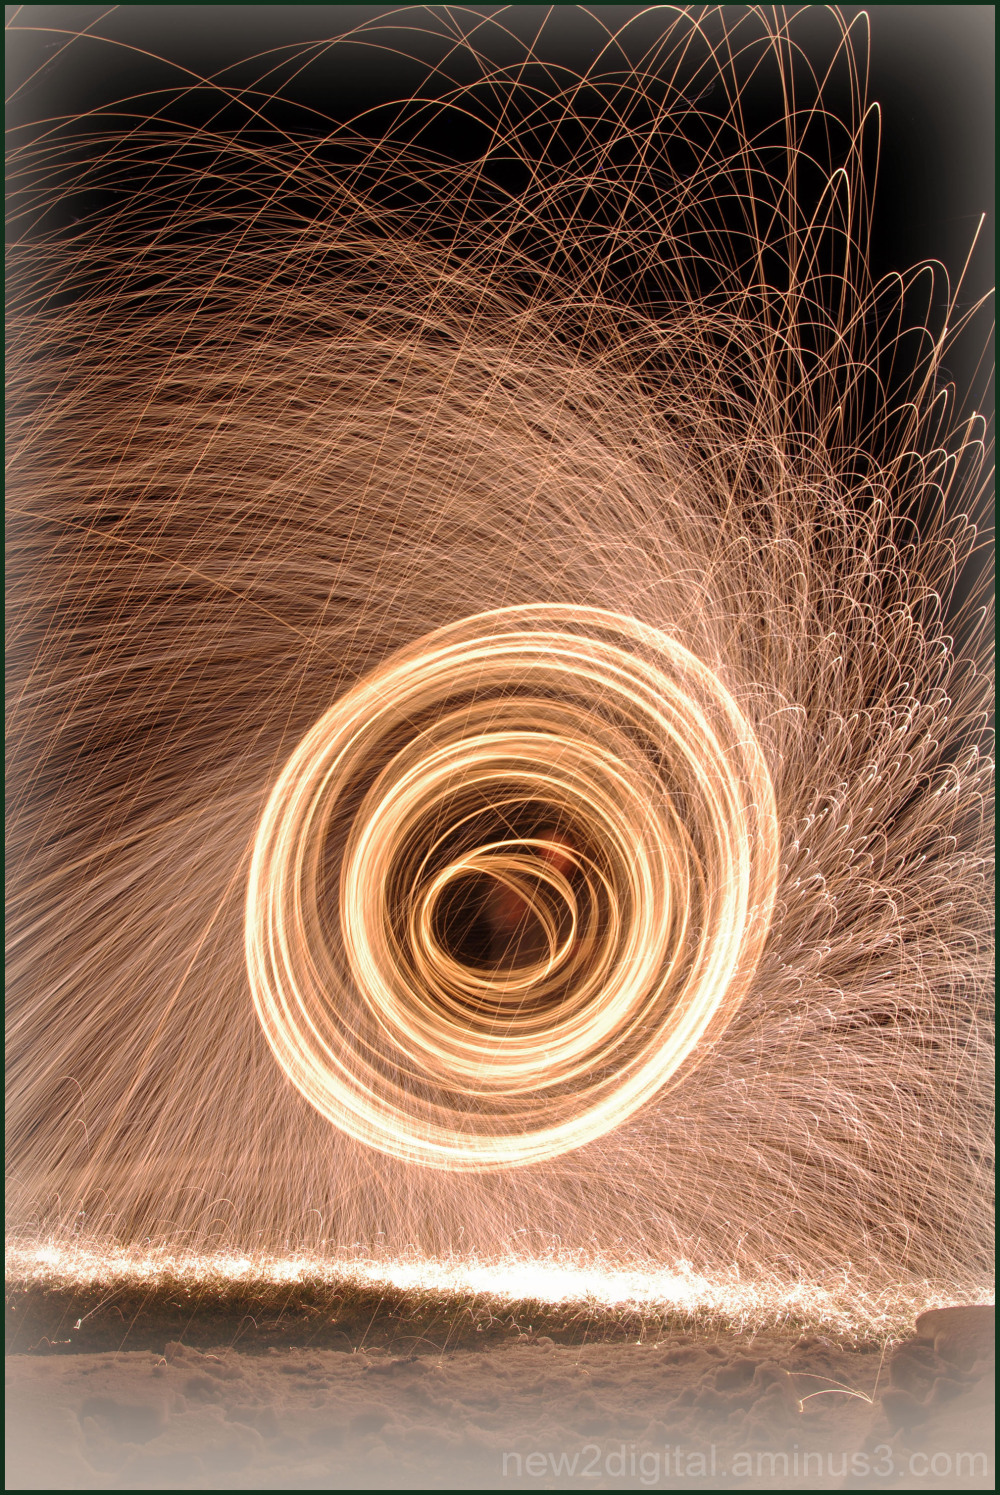 Spinning Steel Wool 3/3